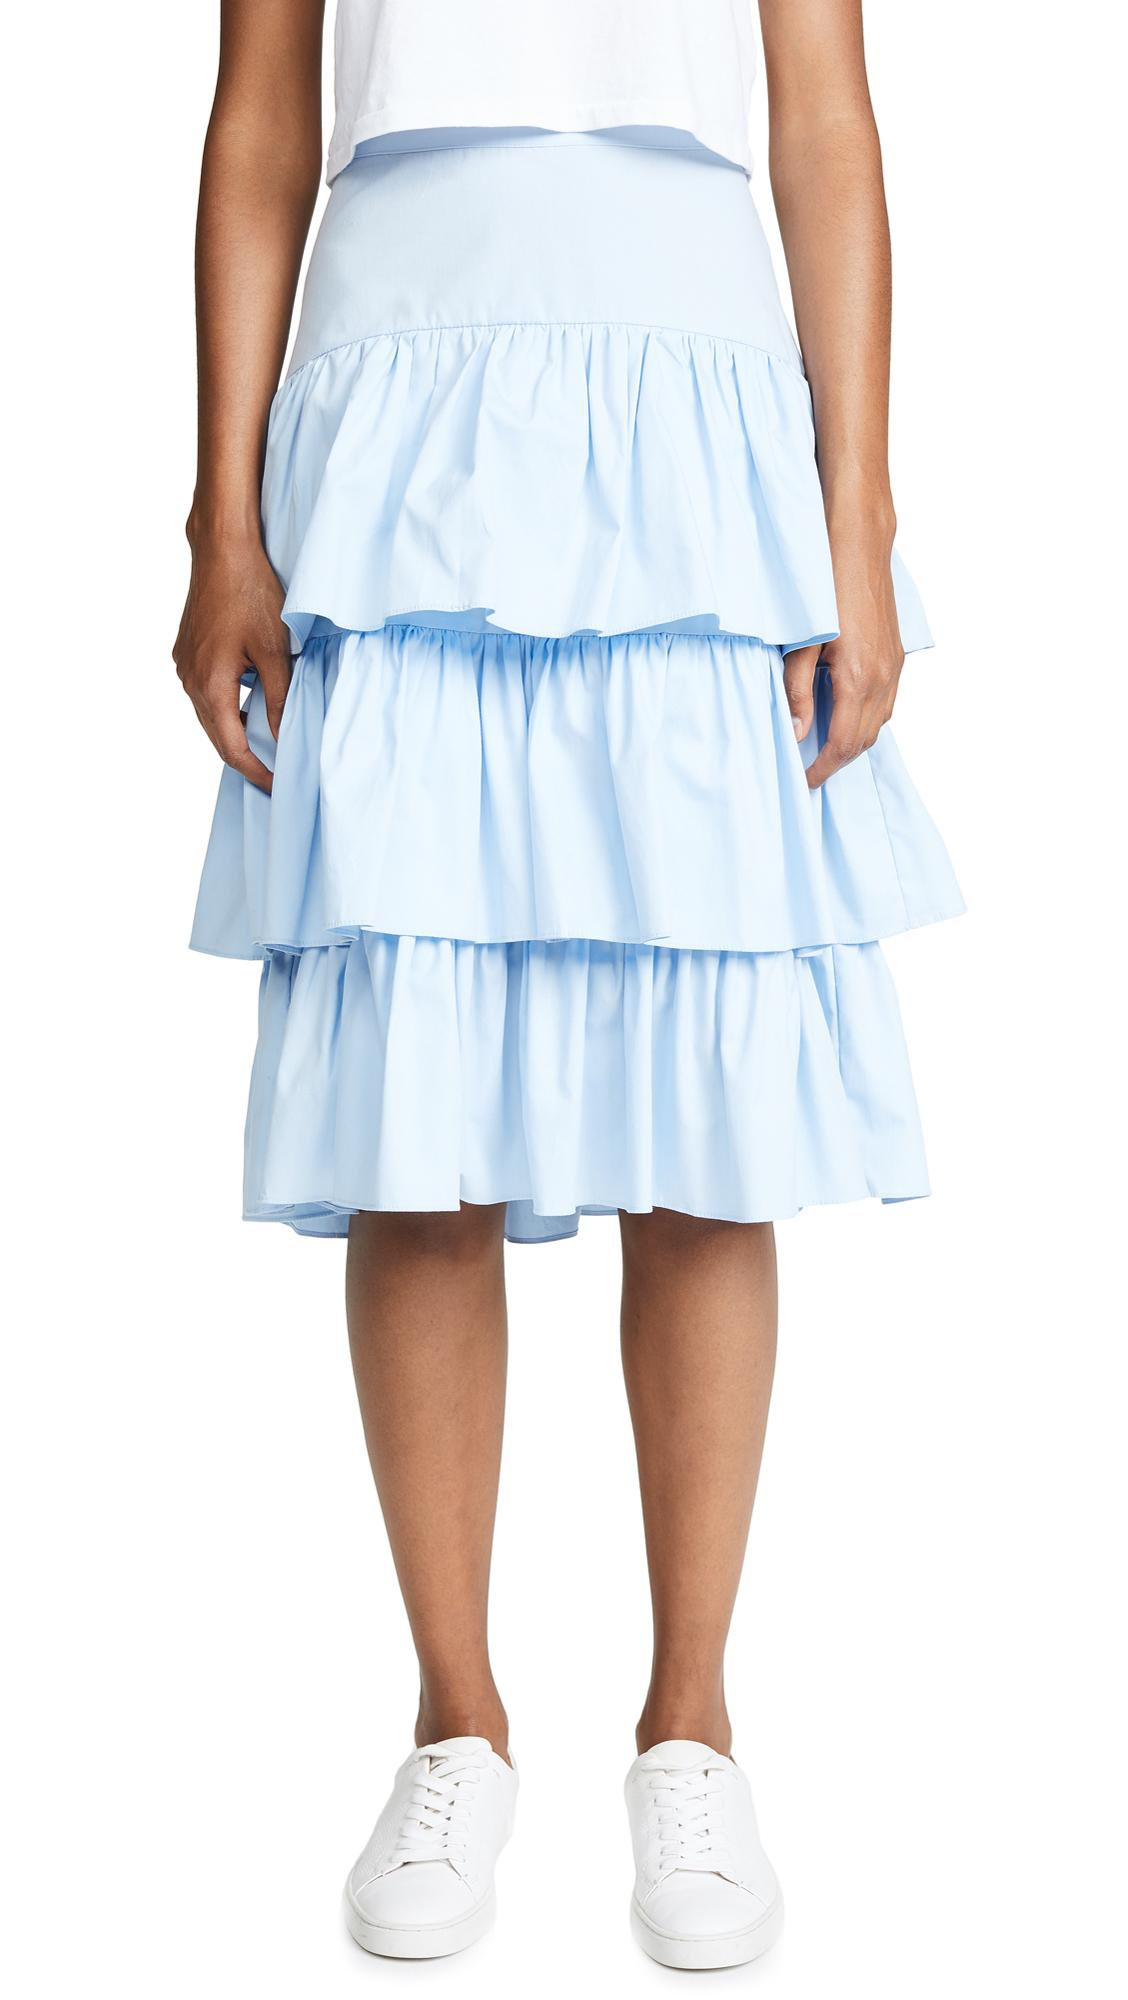 bc0fabab93 Stylekeepers Holiday Skirt In Sky Blue | ModeSens